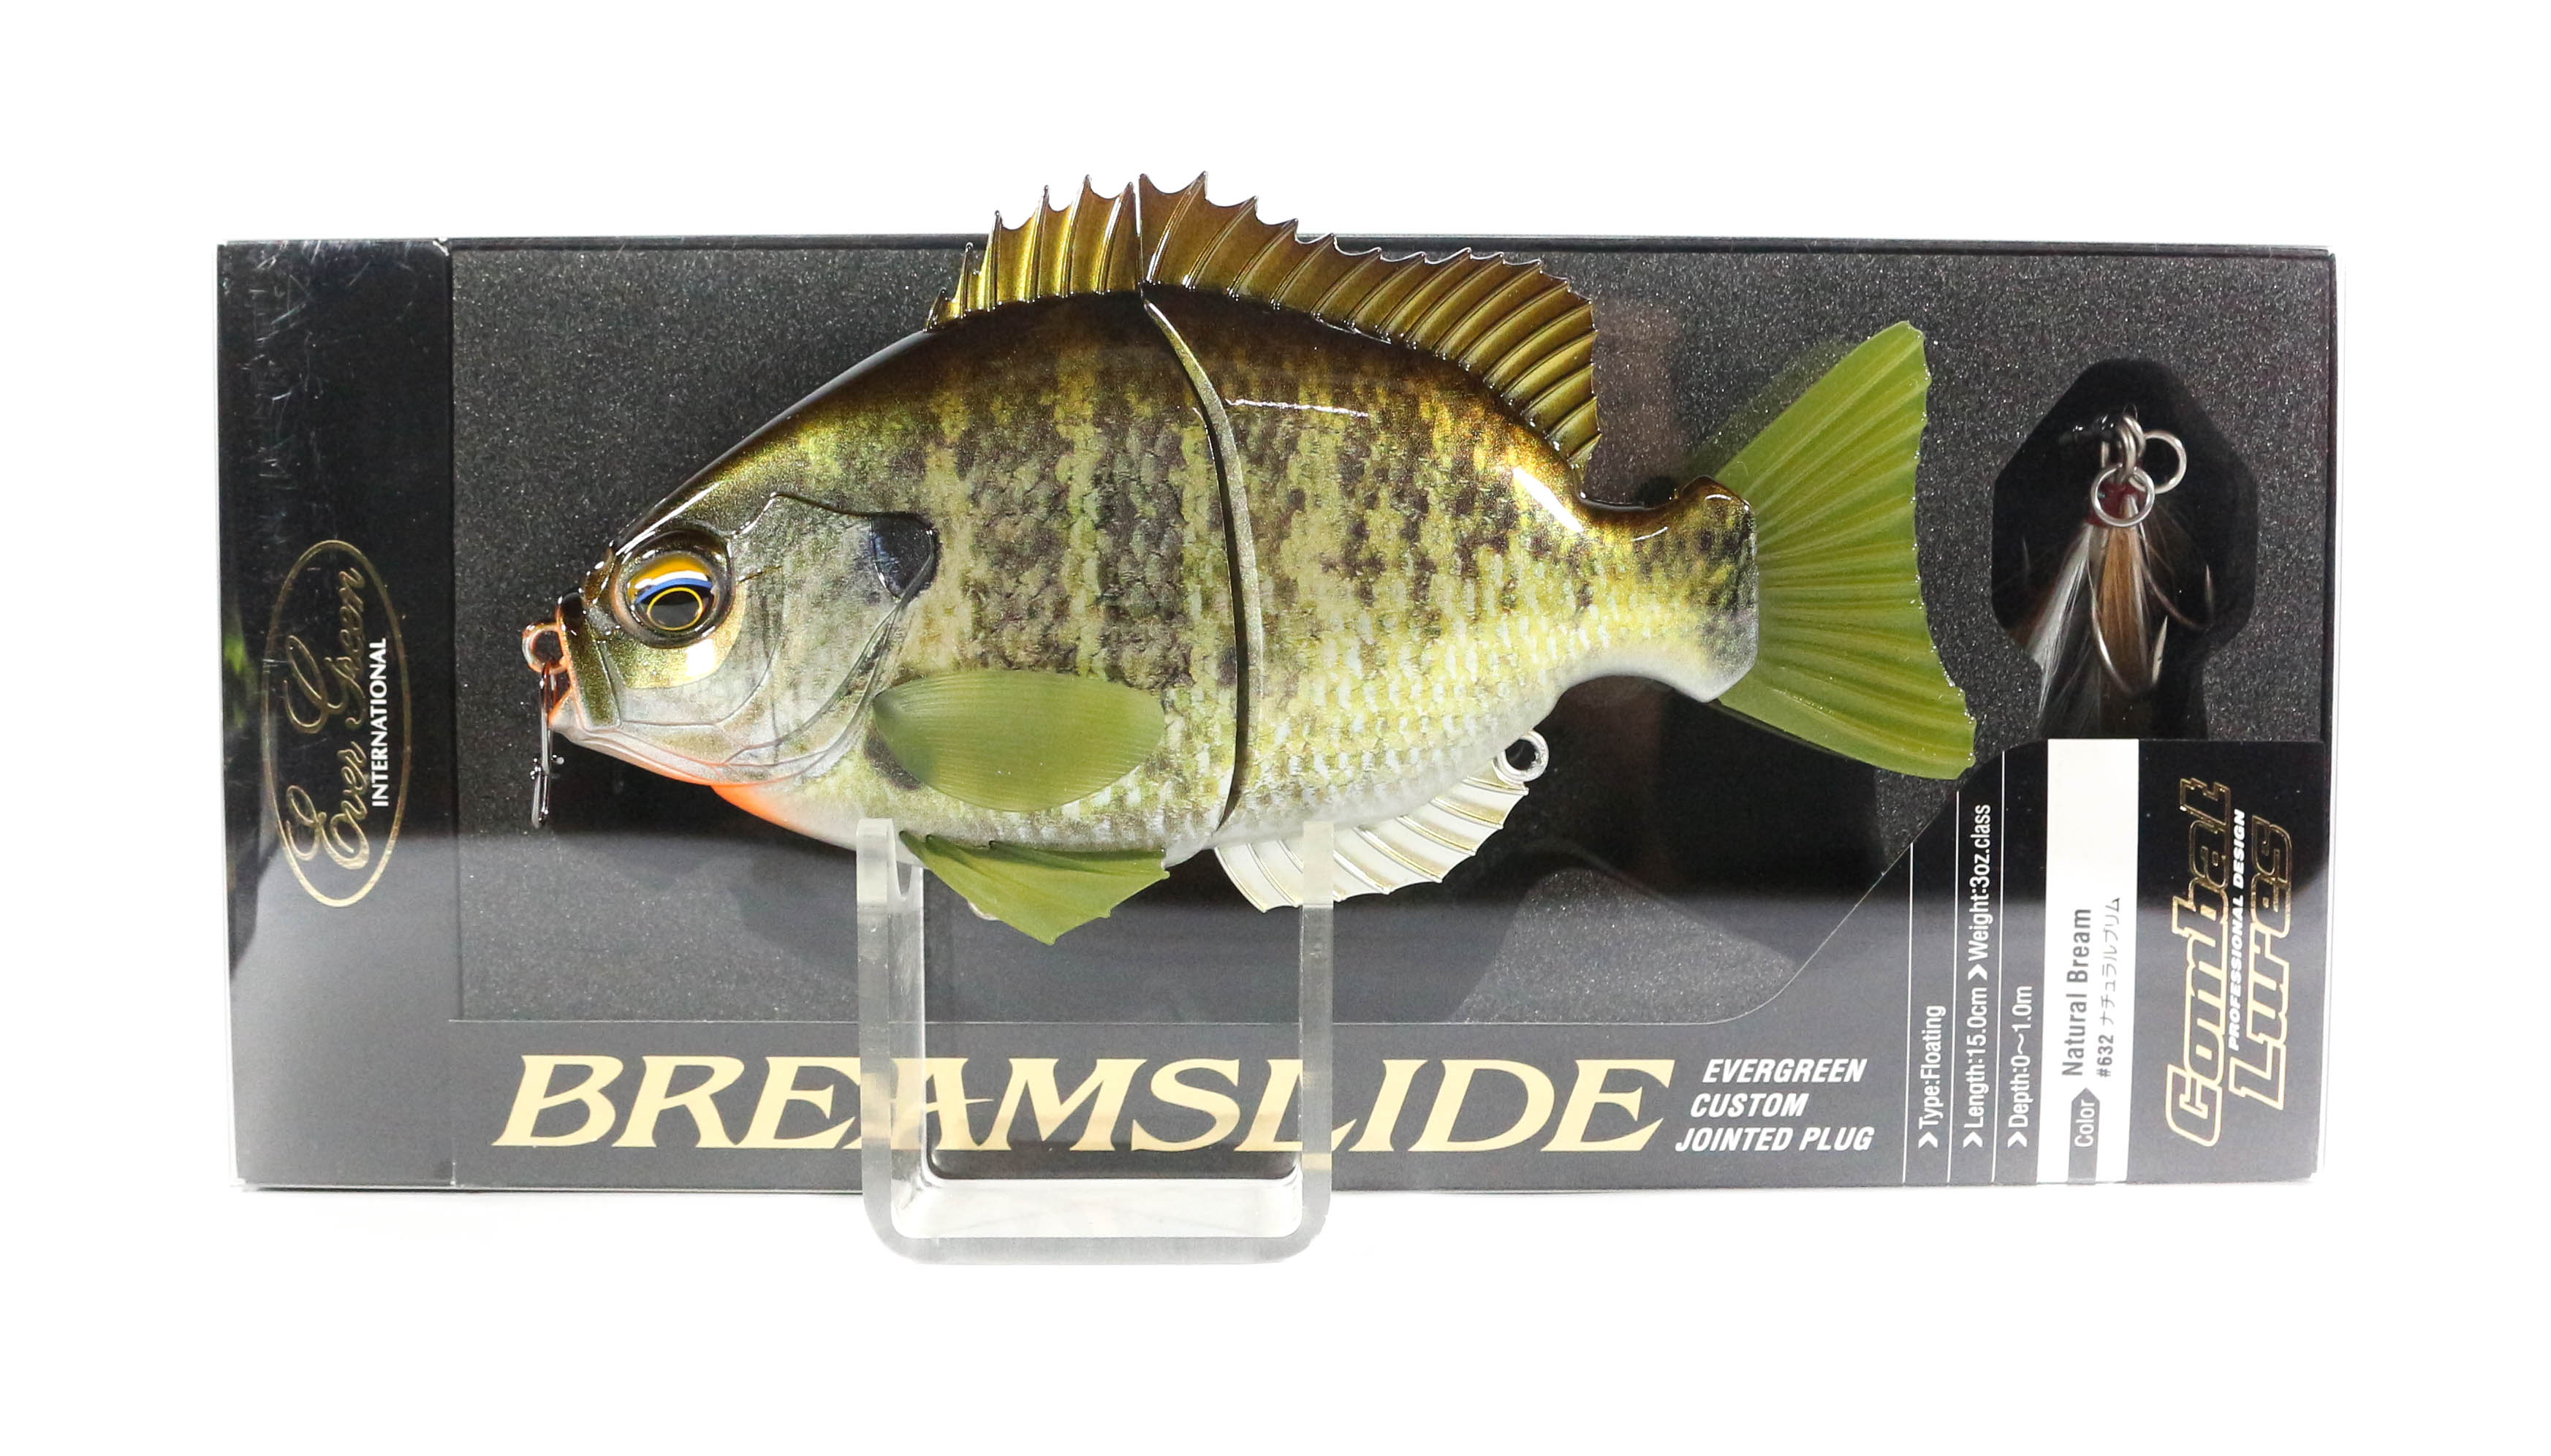 Evergreen Bream Slide Flat Side Jointed Lipless Floating Lure 632 (5967)